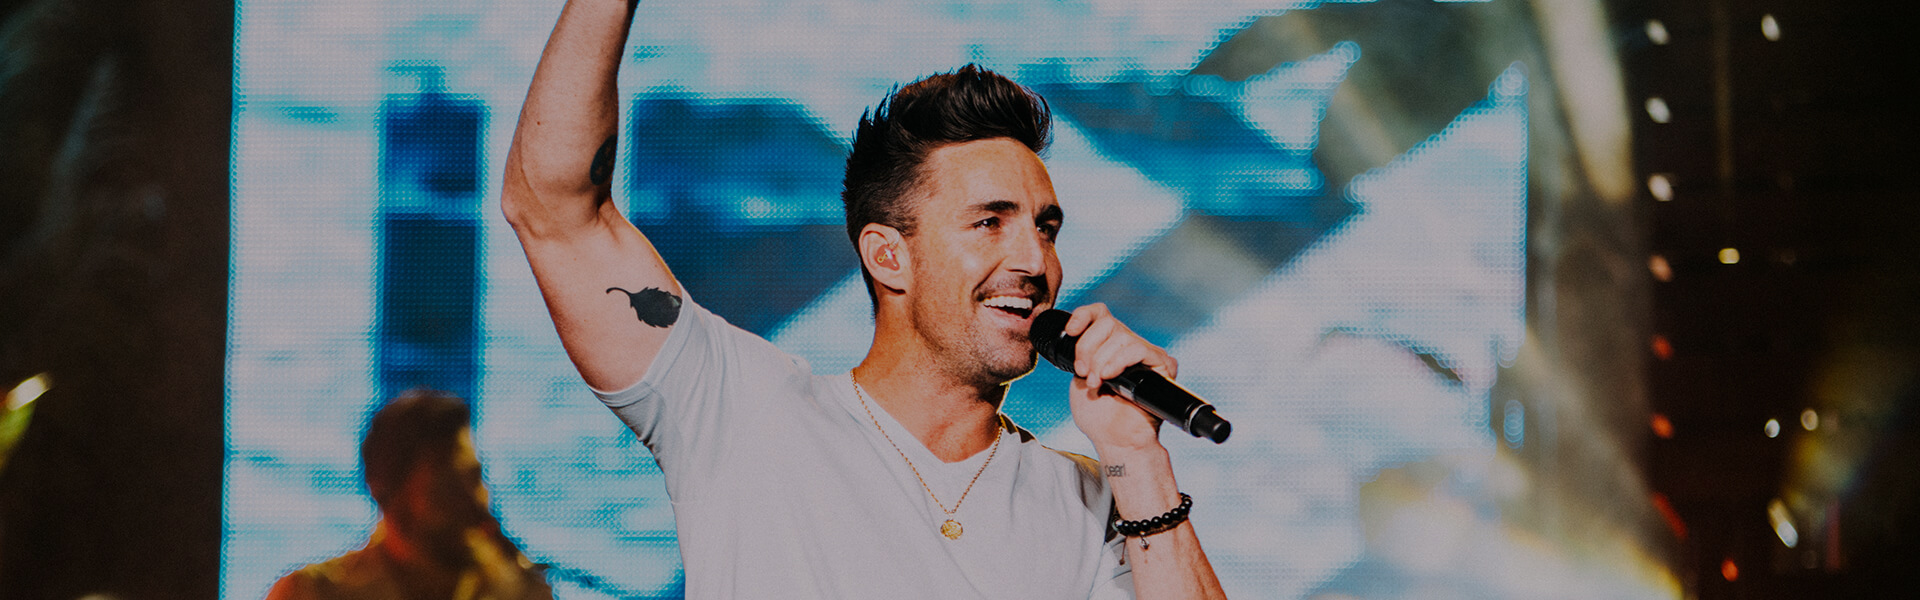 Jake Owen List Of Songs Good jake owen - live at encanterra® - the good life festival